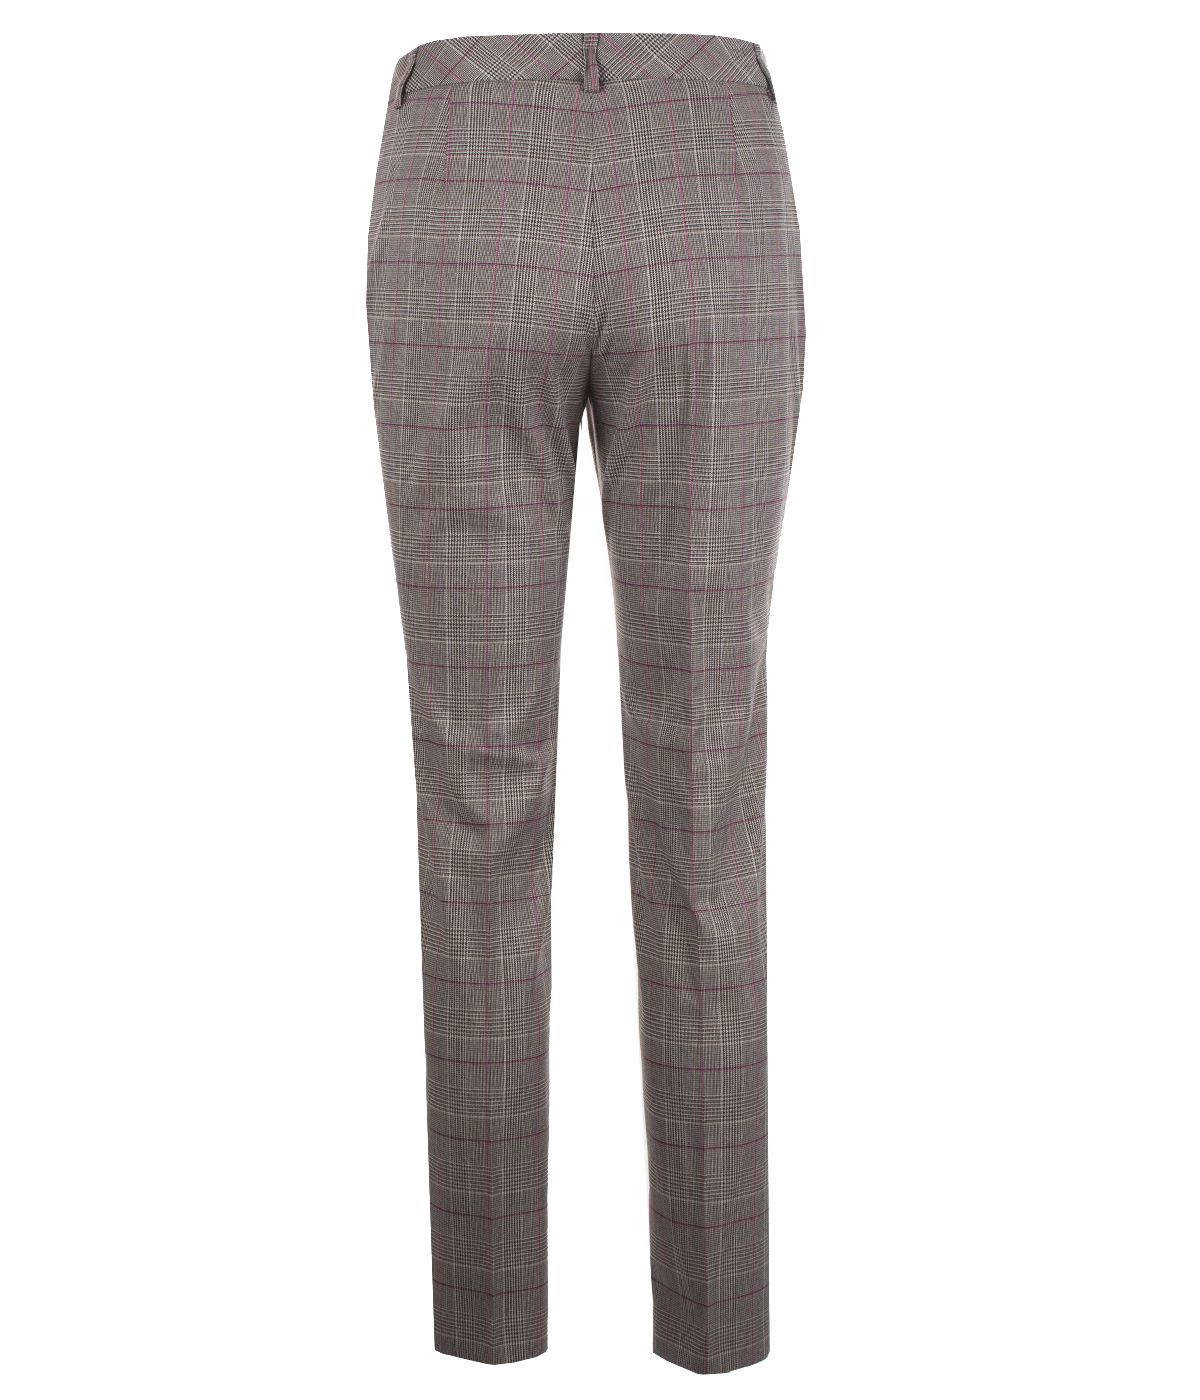 Elegant trousers with crease, with viscose 1